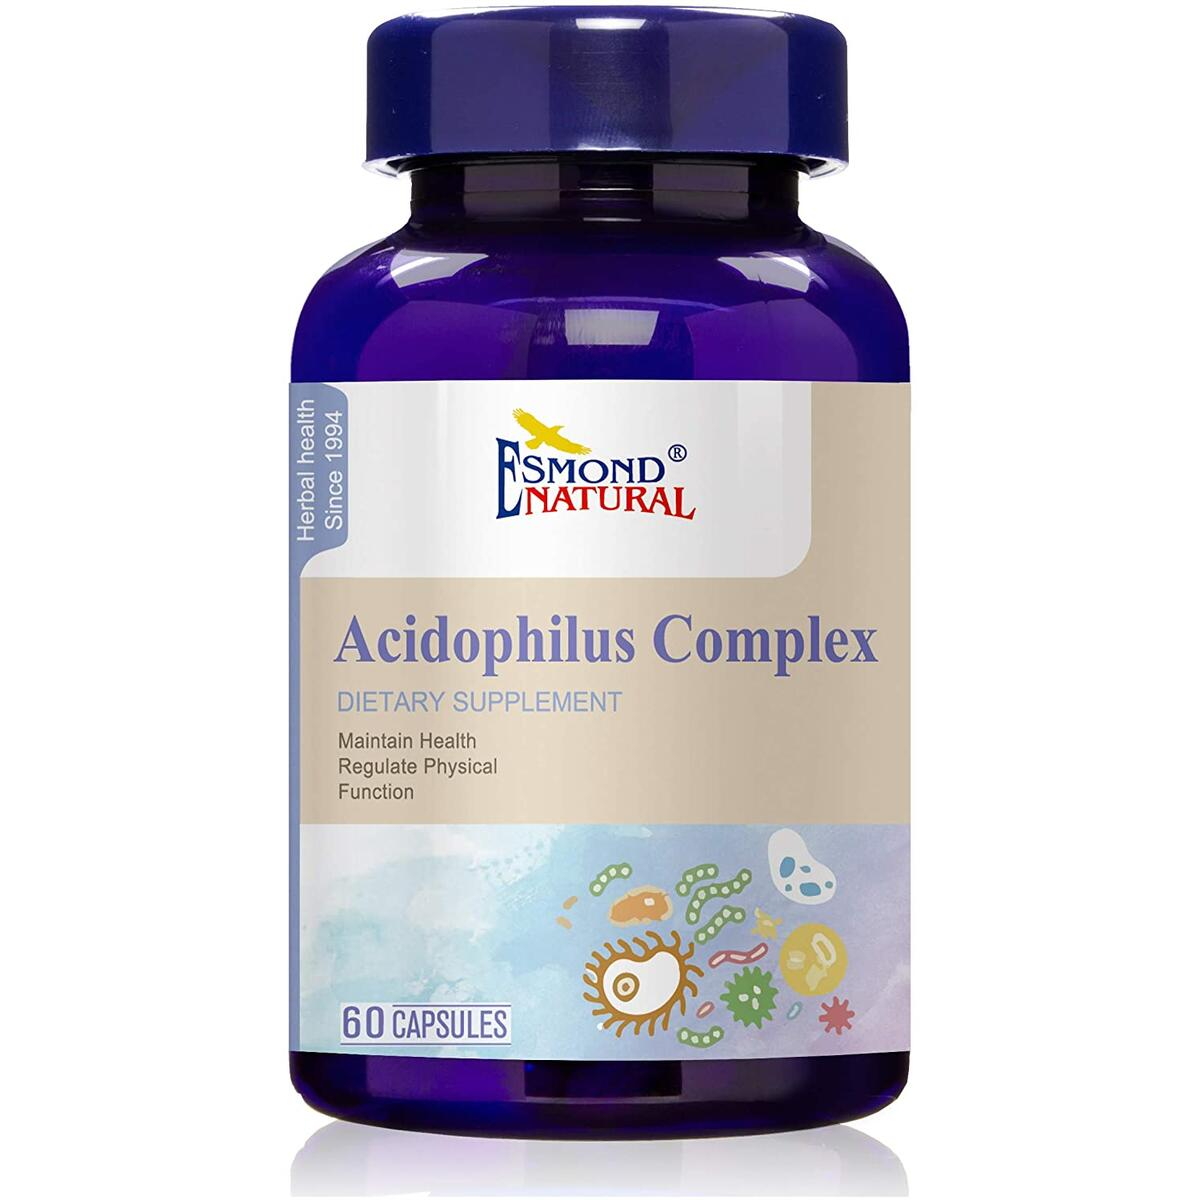 (5 Count, 25% Off) Esmond Natural: Acidophilus Complex (Supports Gastro-Intestinal Health & Physical Functions), GMP, Natural Product Assn Certified, Made in USA-13.6mg, 300 Capsules